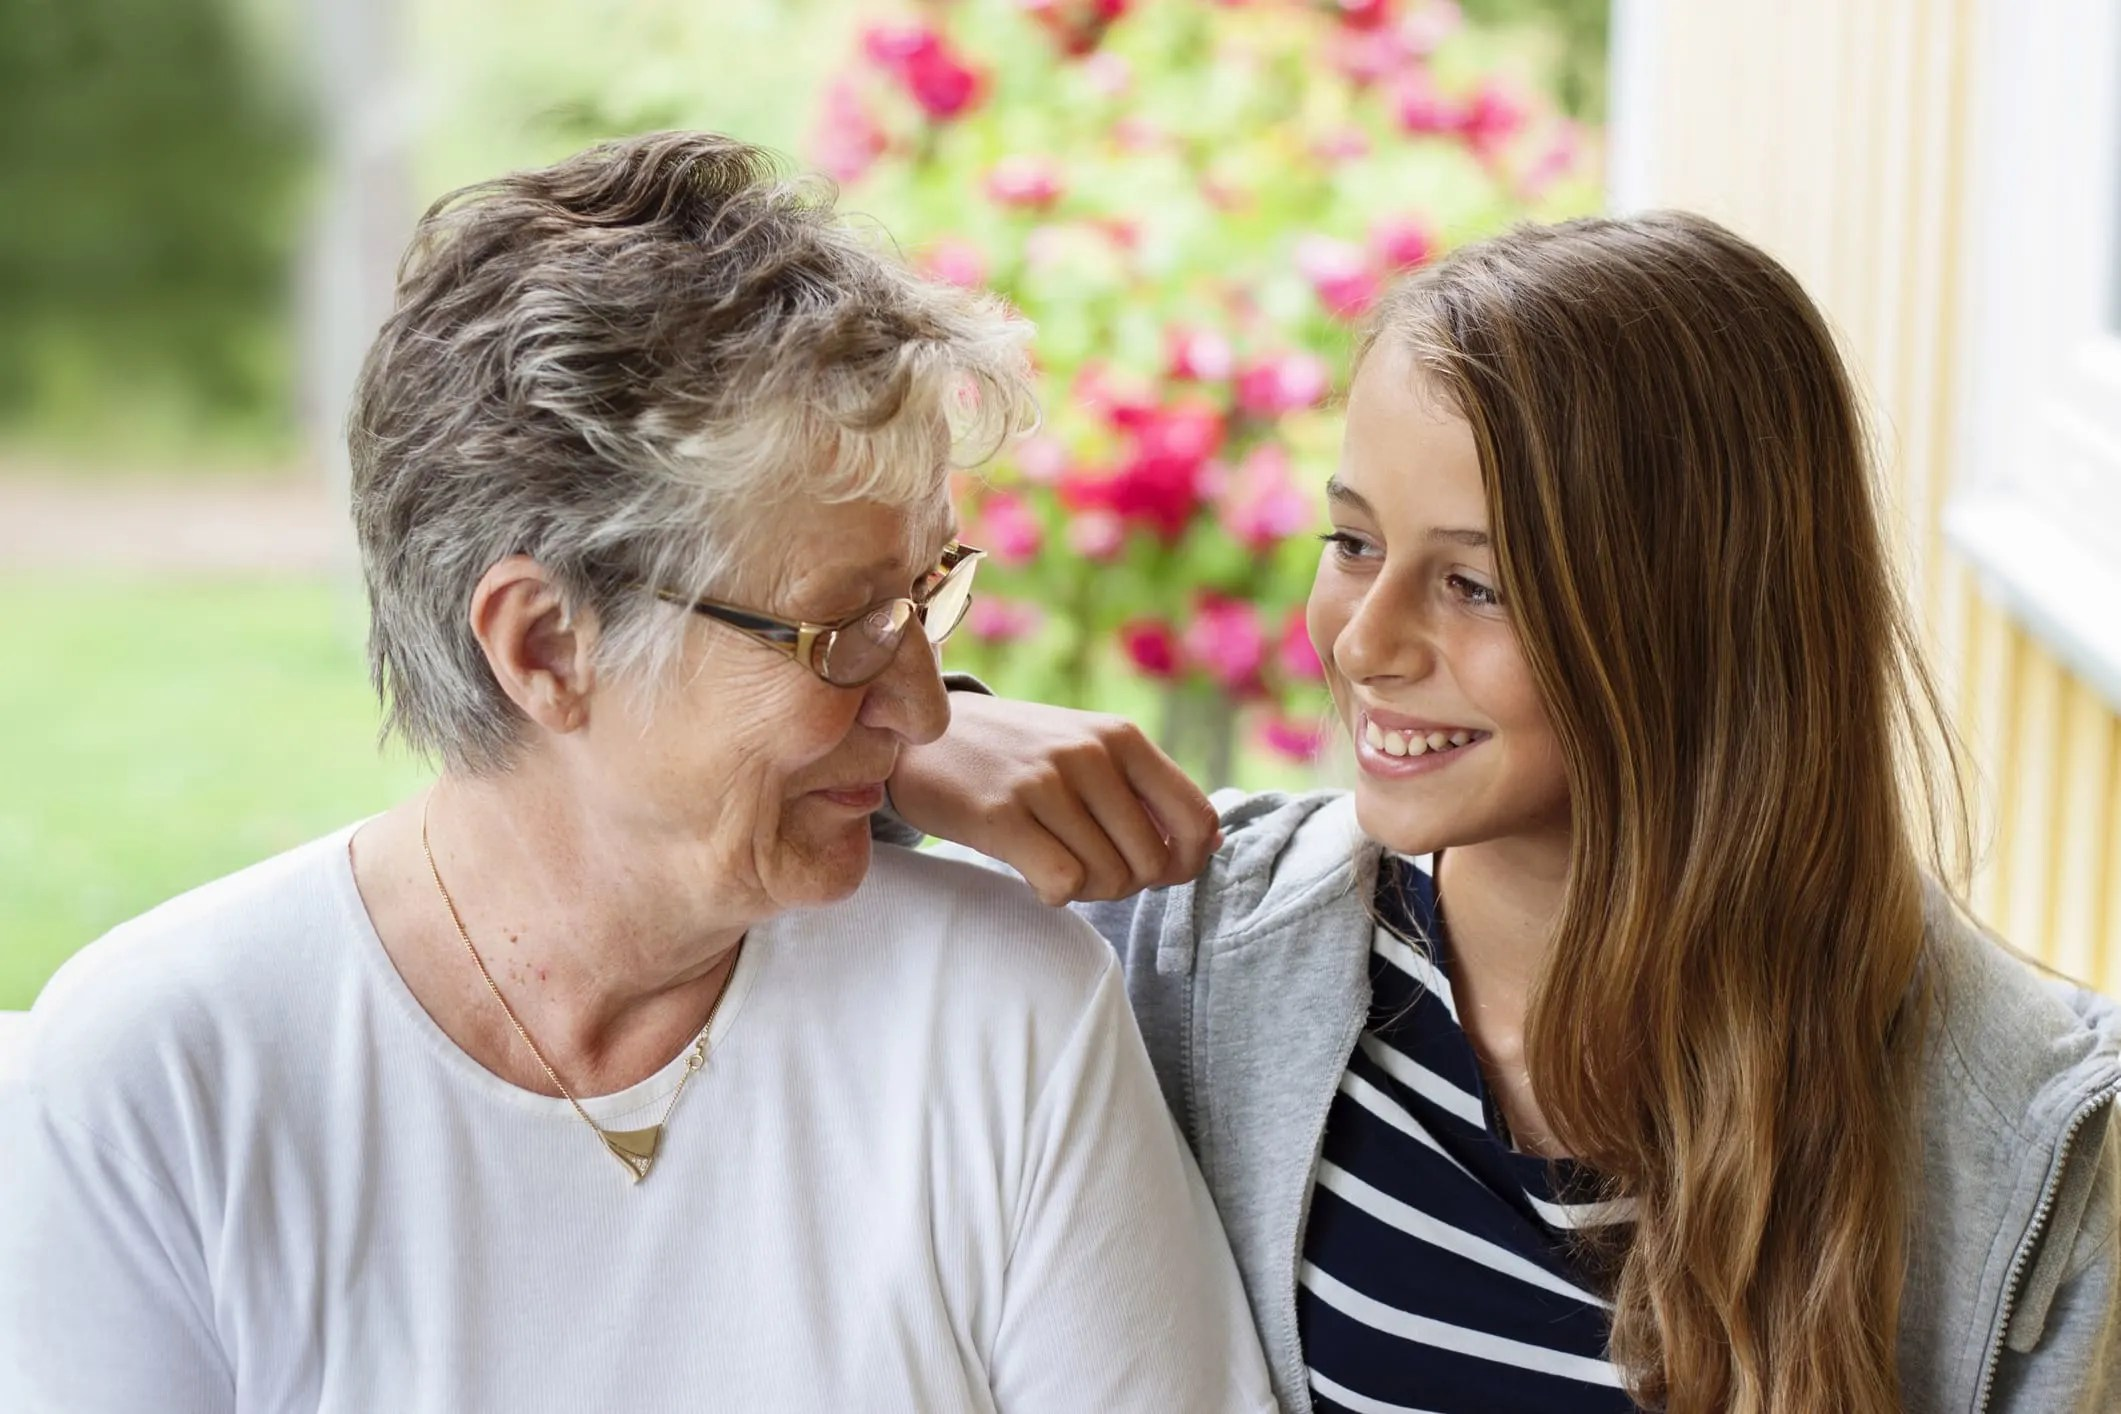 Older woman with teenage girl, smiling at each other